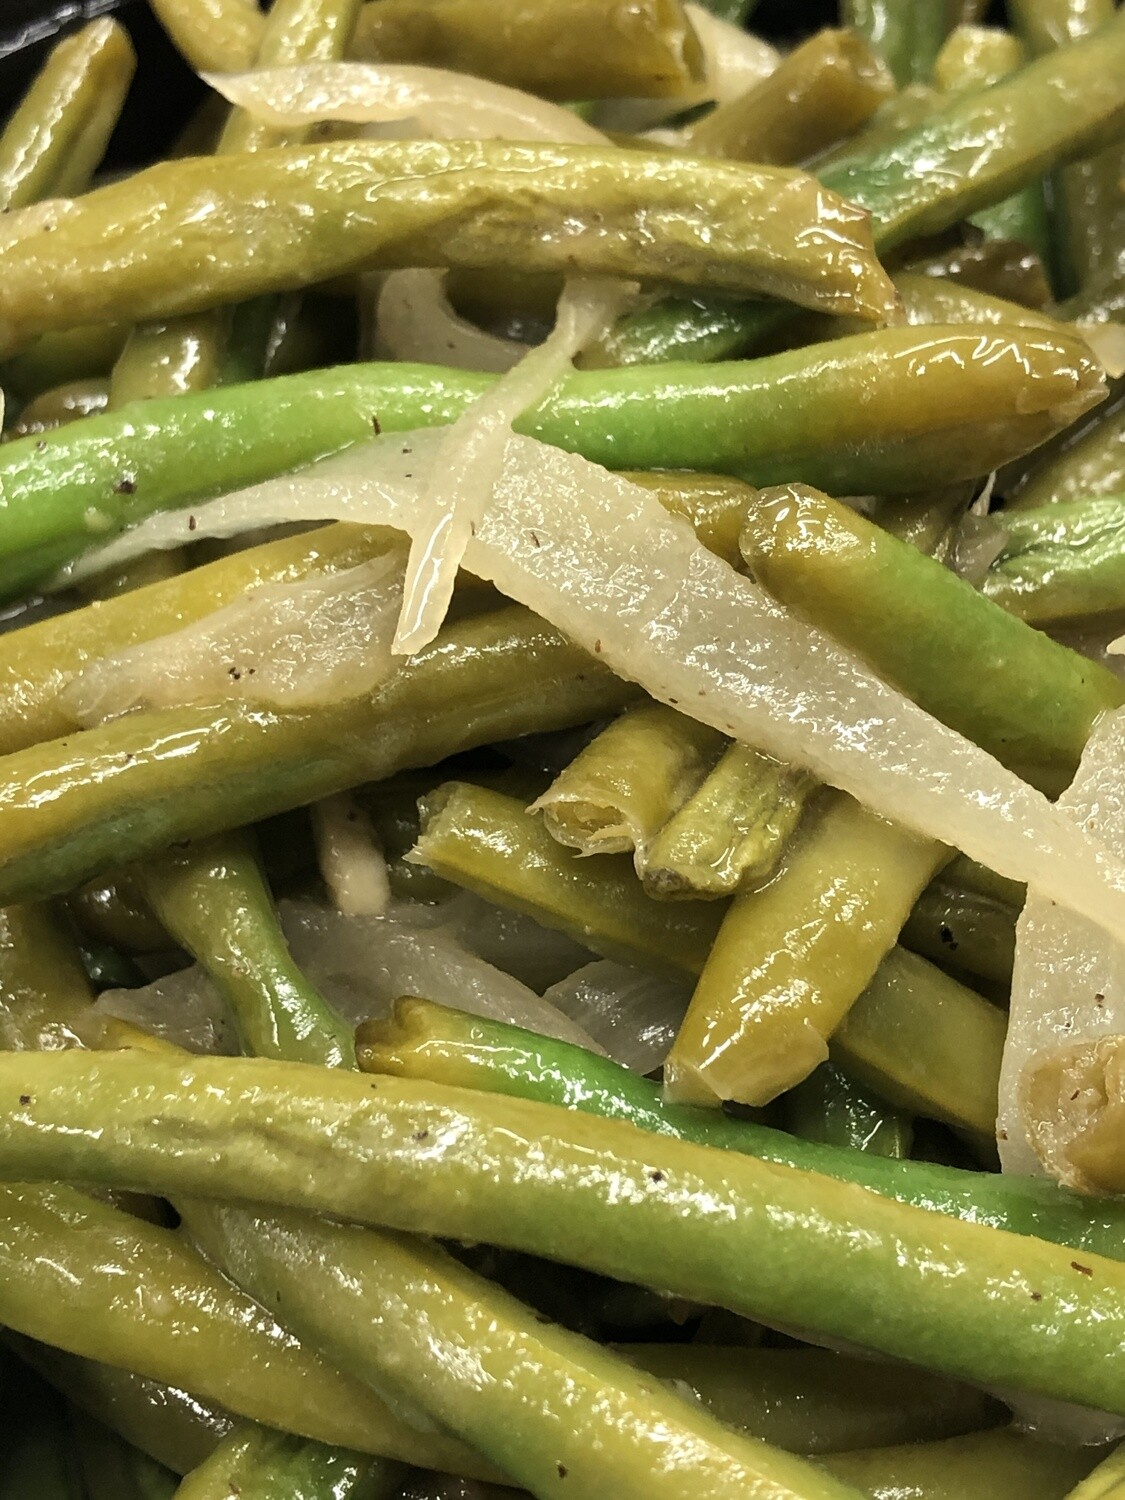 Sauteed Green Beans Family Side - 16oz green beans sauteed with onions and garlic, finished with lemon. Family of 4.